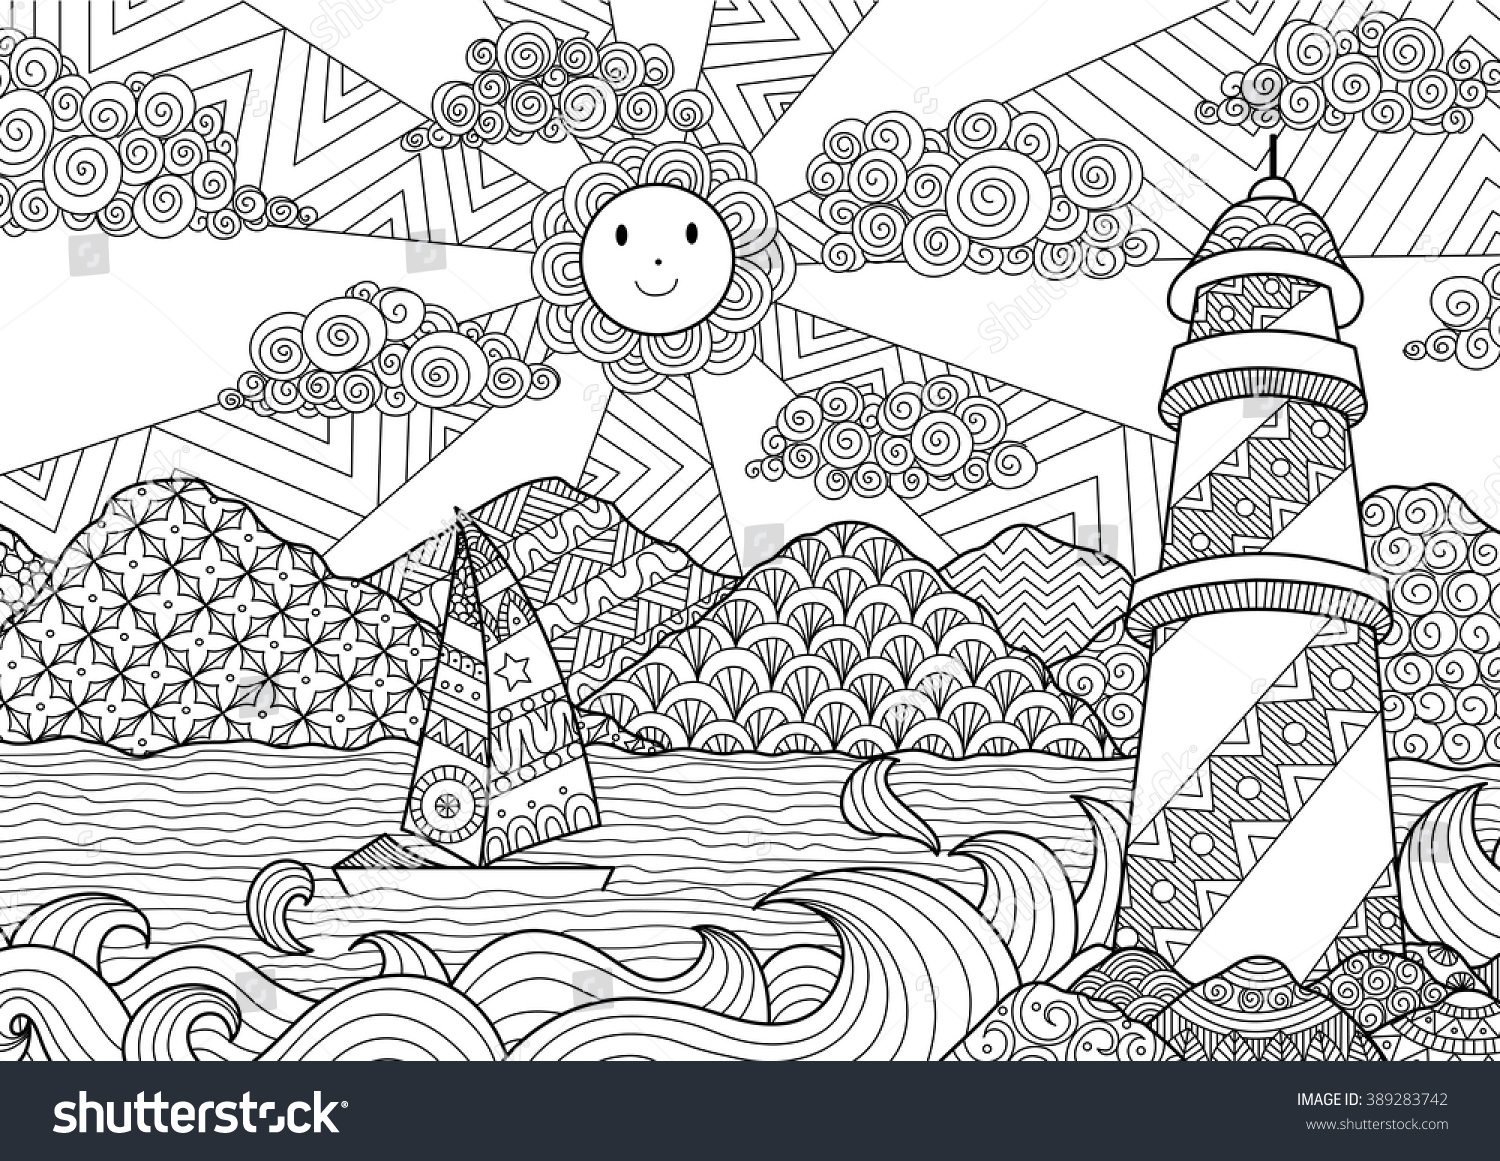 Line Art Poster Design : Seascape line art design coloring book stock vector